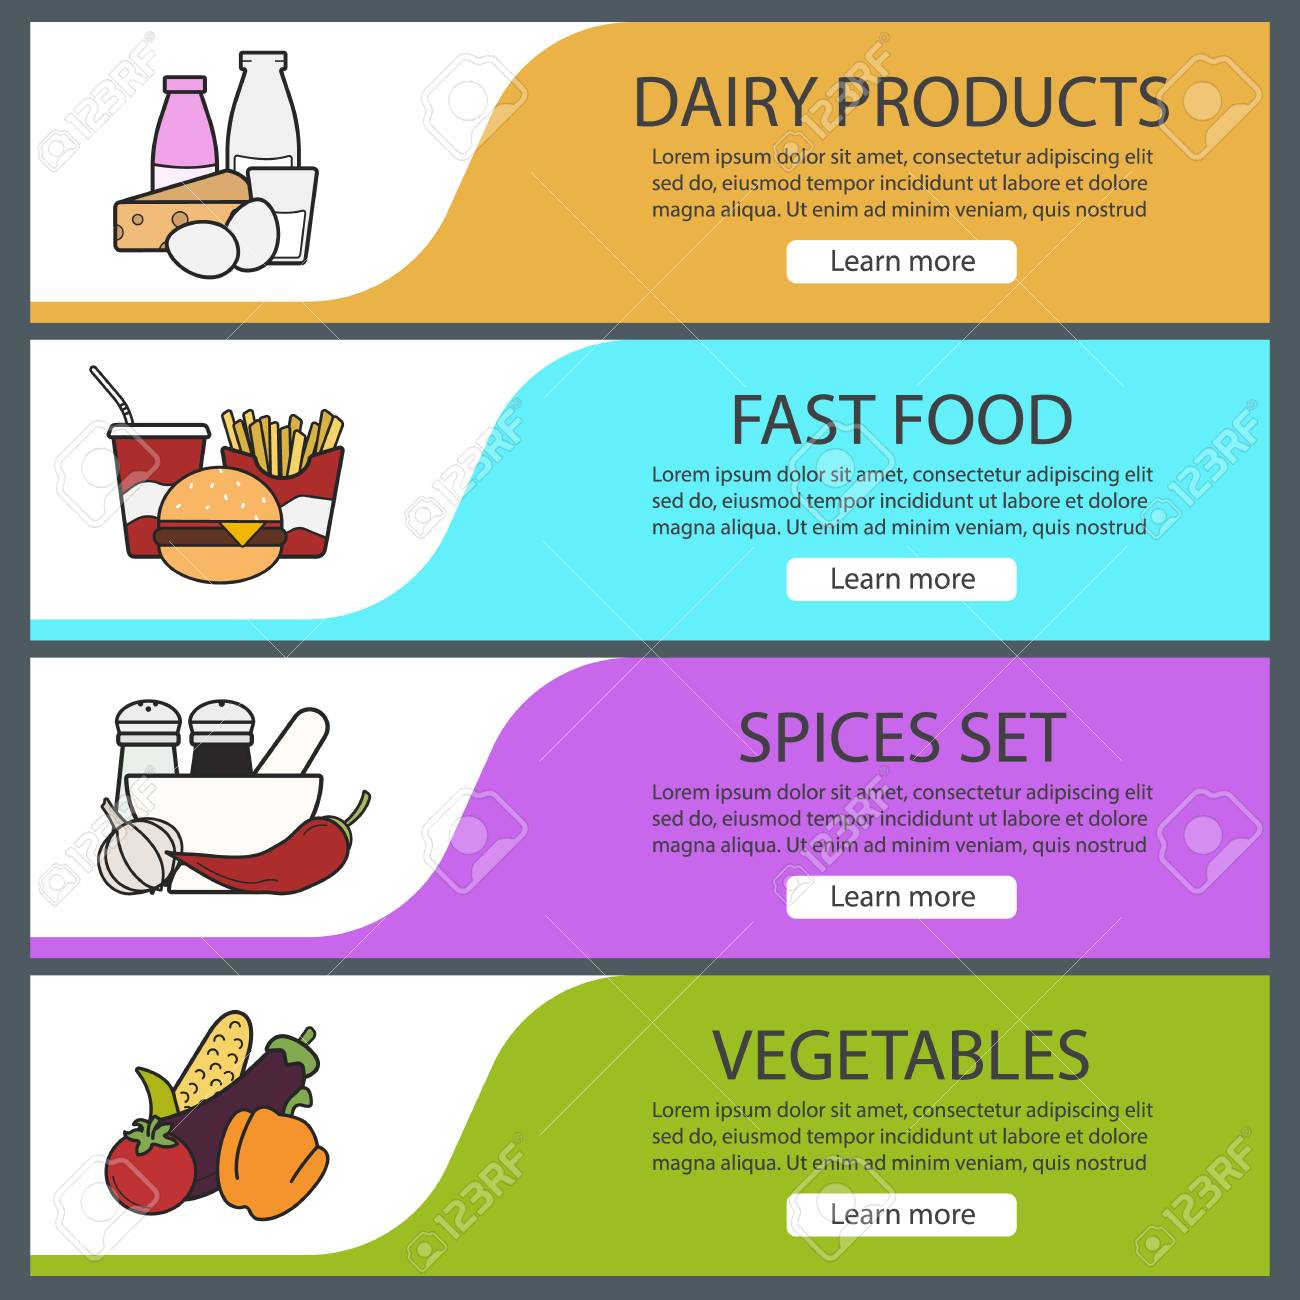 8261a86db1 Products Categories Banner Templates Set. Easy To Edit. Fastfood ...